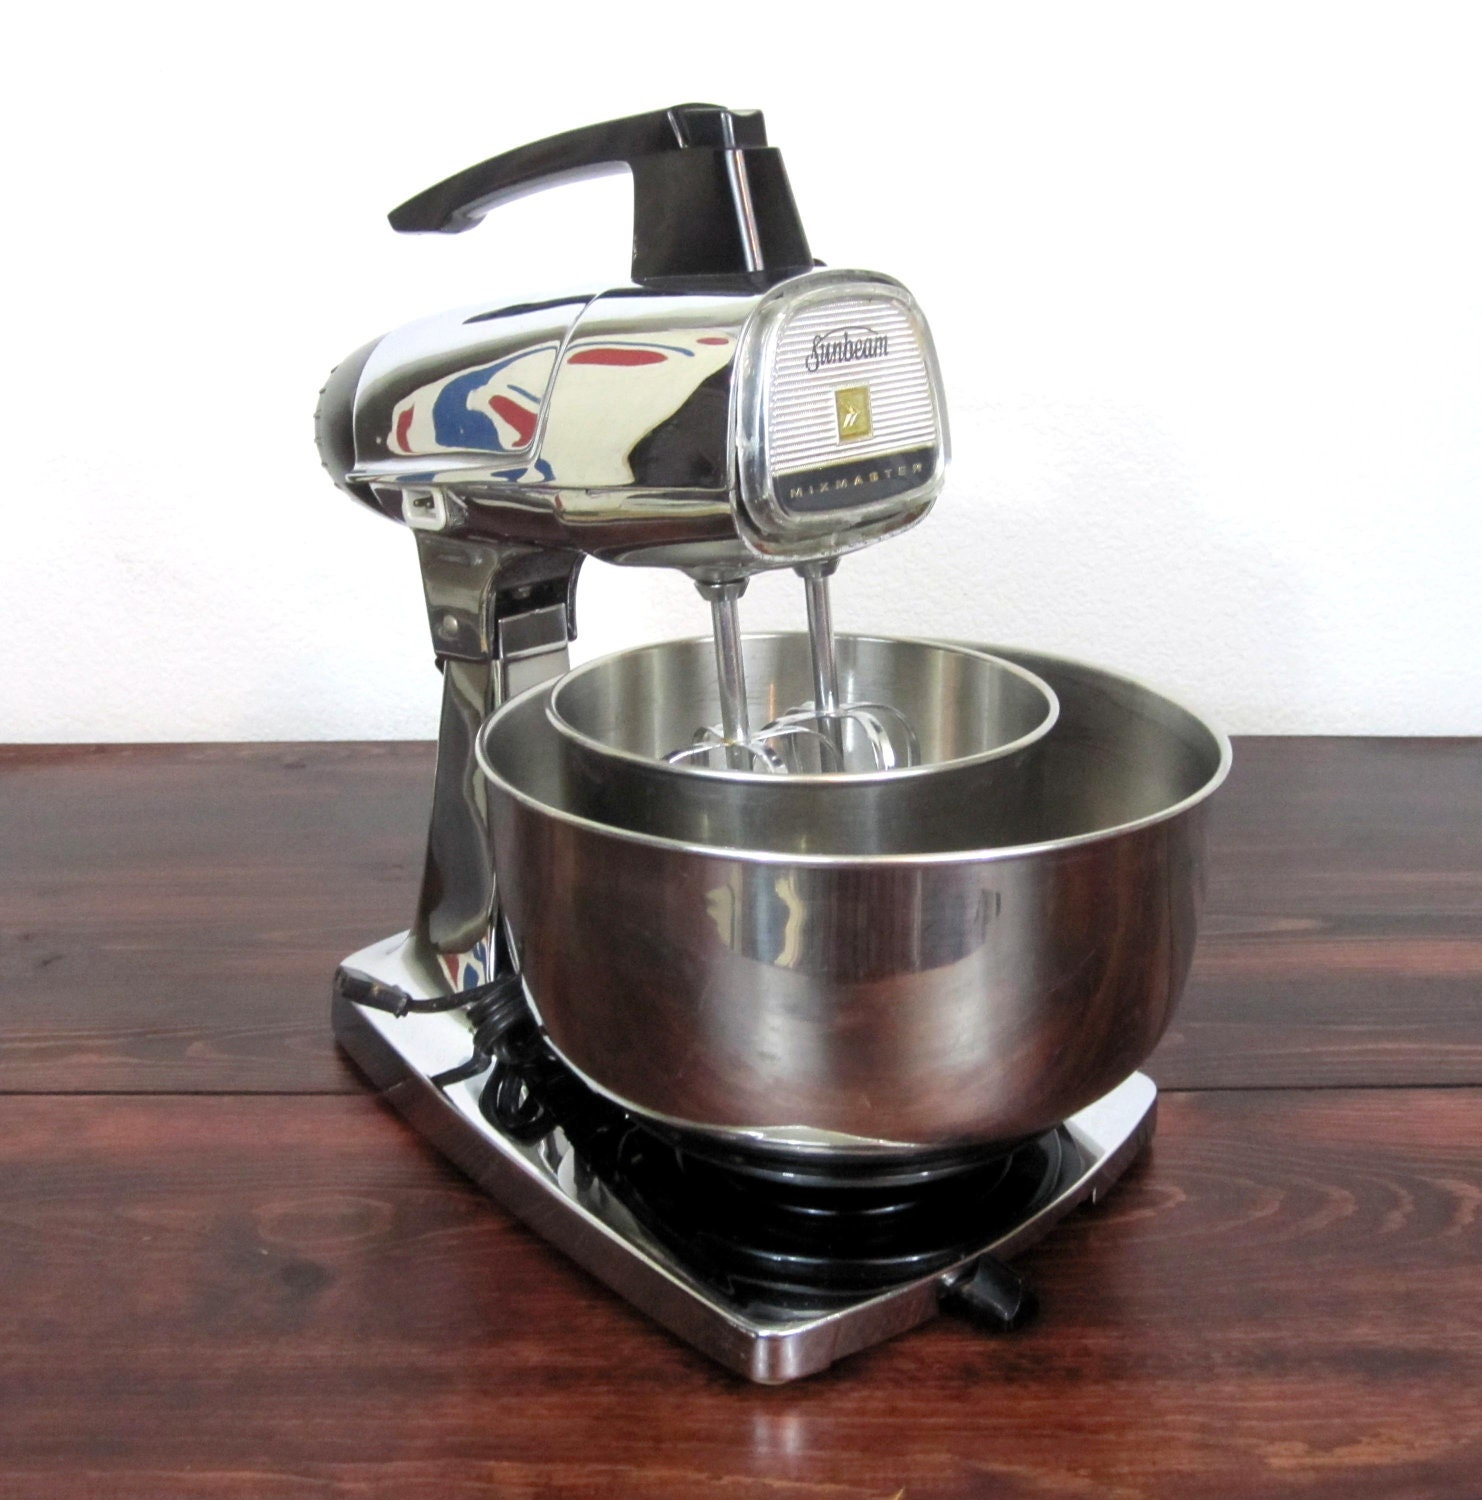 dating sunbeam mixmaster Following the popularity of this first small electrical appliance, sunbeam began importing more and more - and in 1948, launched the sunbeam mixmaster, the first small electrical appliance to be manufactured in australia costing more than a month's wages, the mixmaster sold more than 725,000 units in just 10 years.